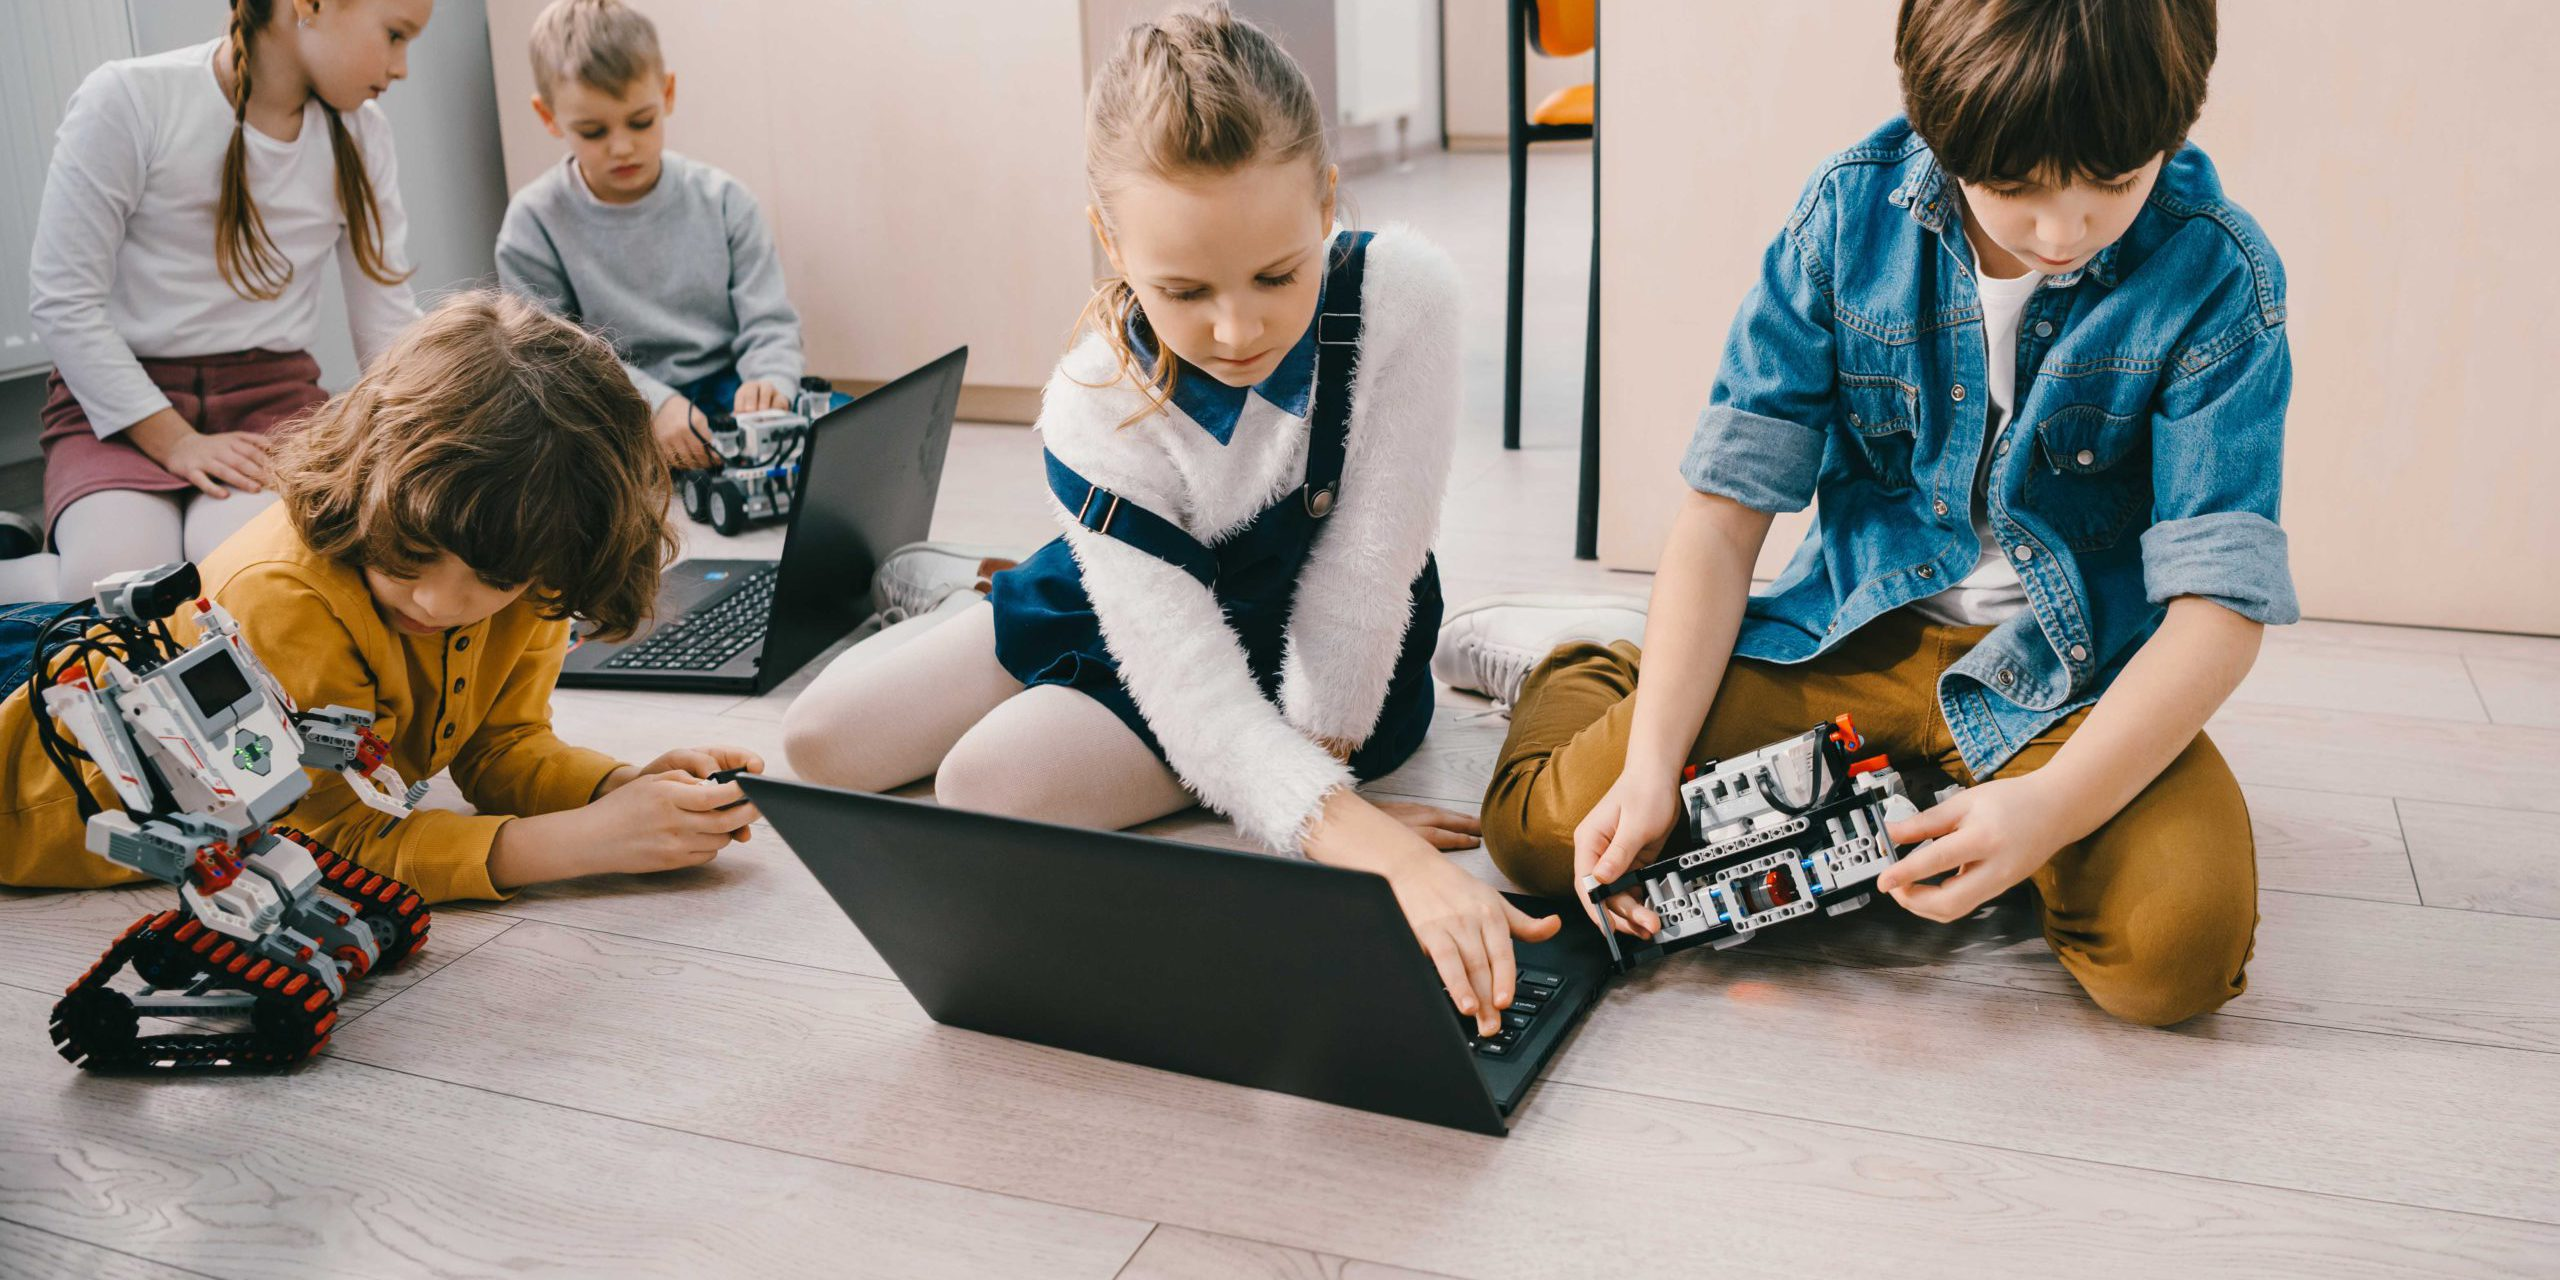 What-is-STEAM-education-and-why-it's-important-for-kids